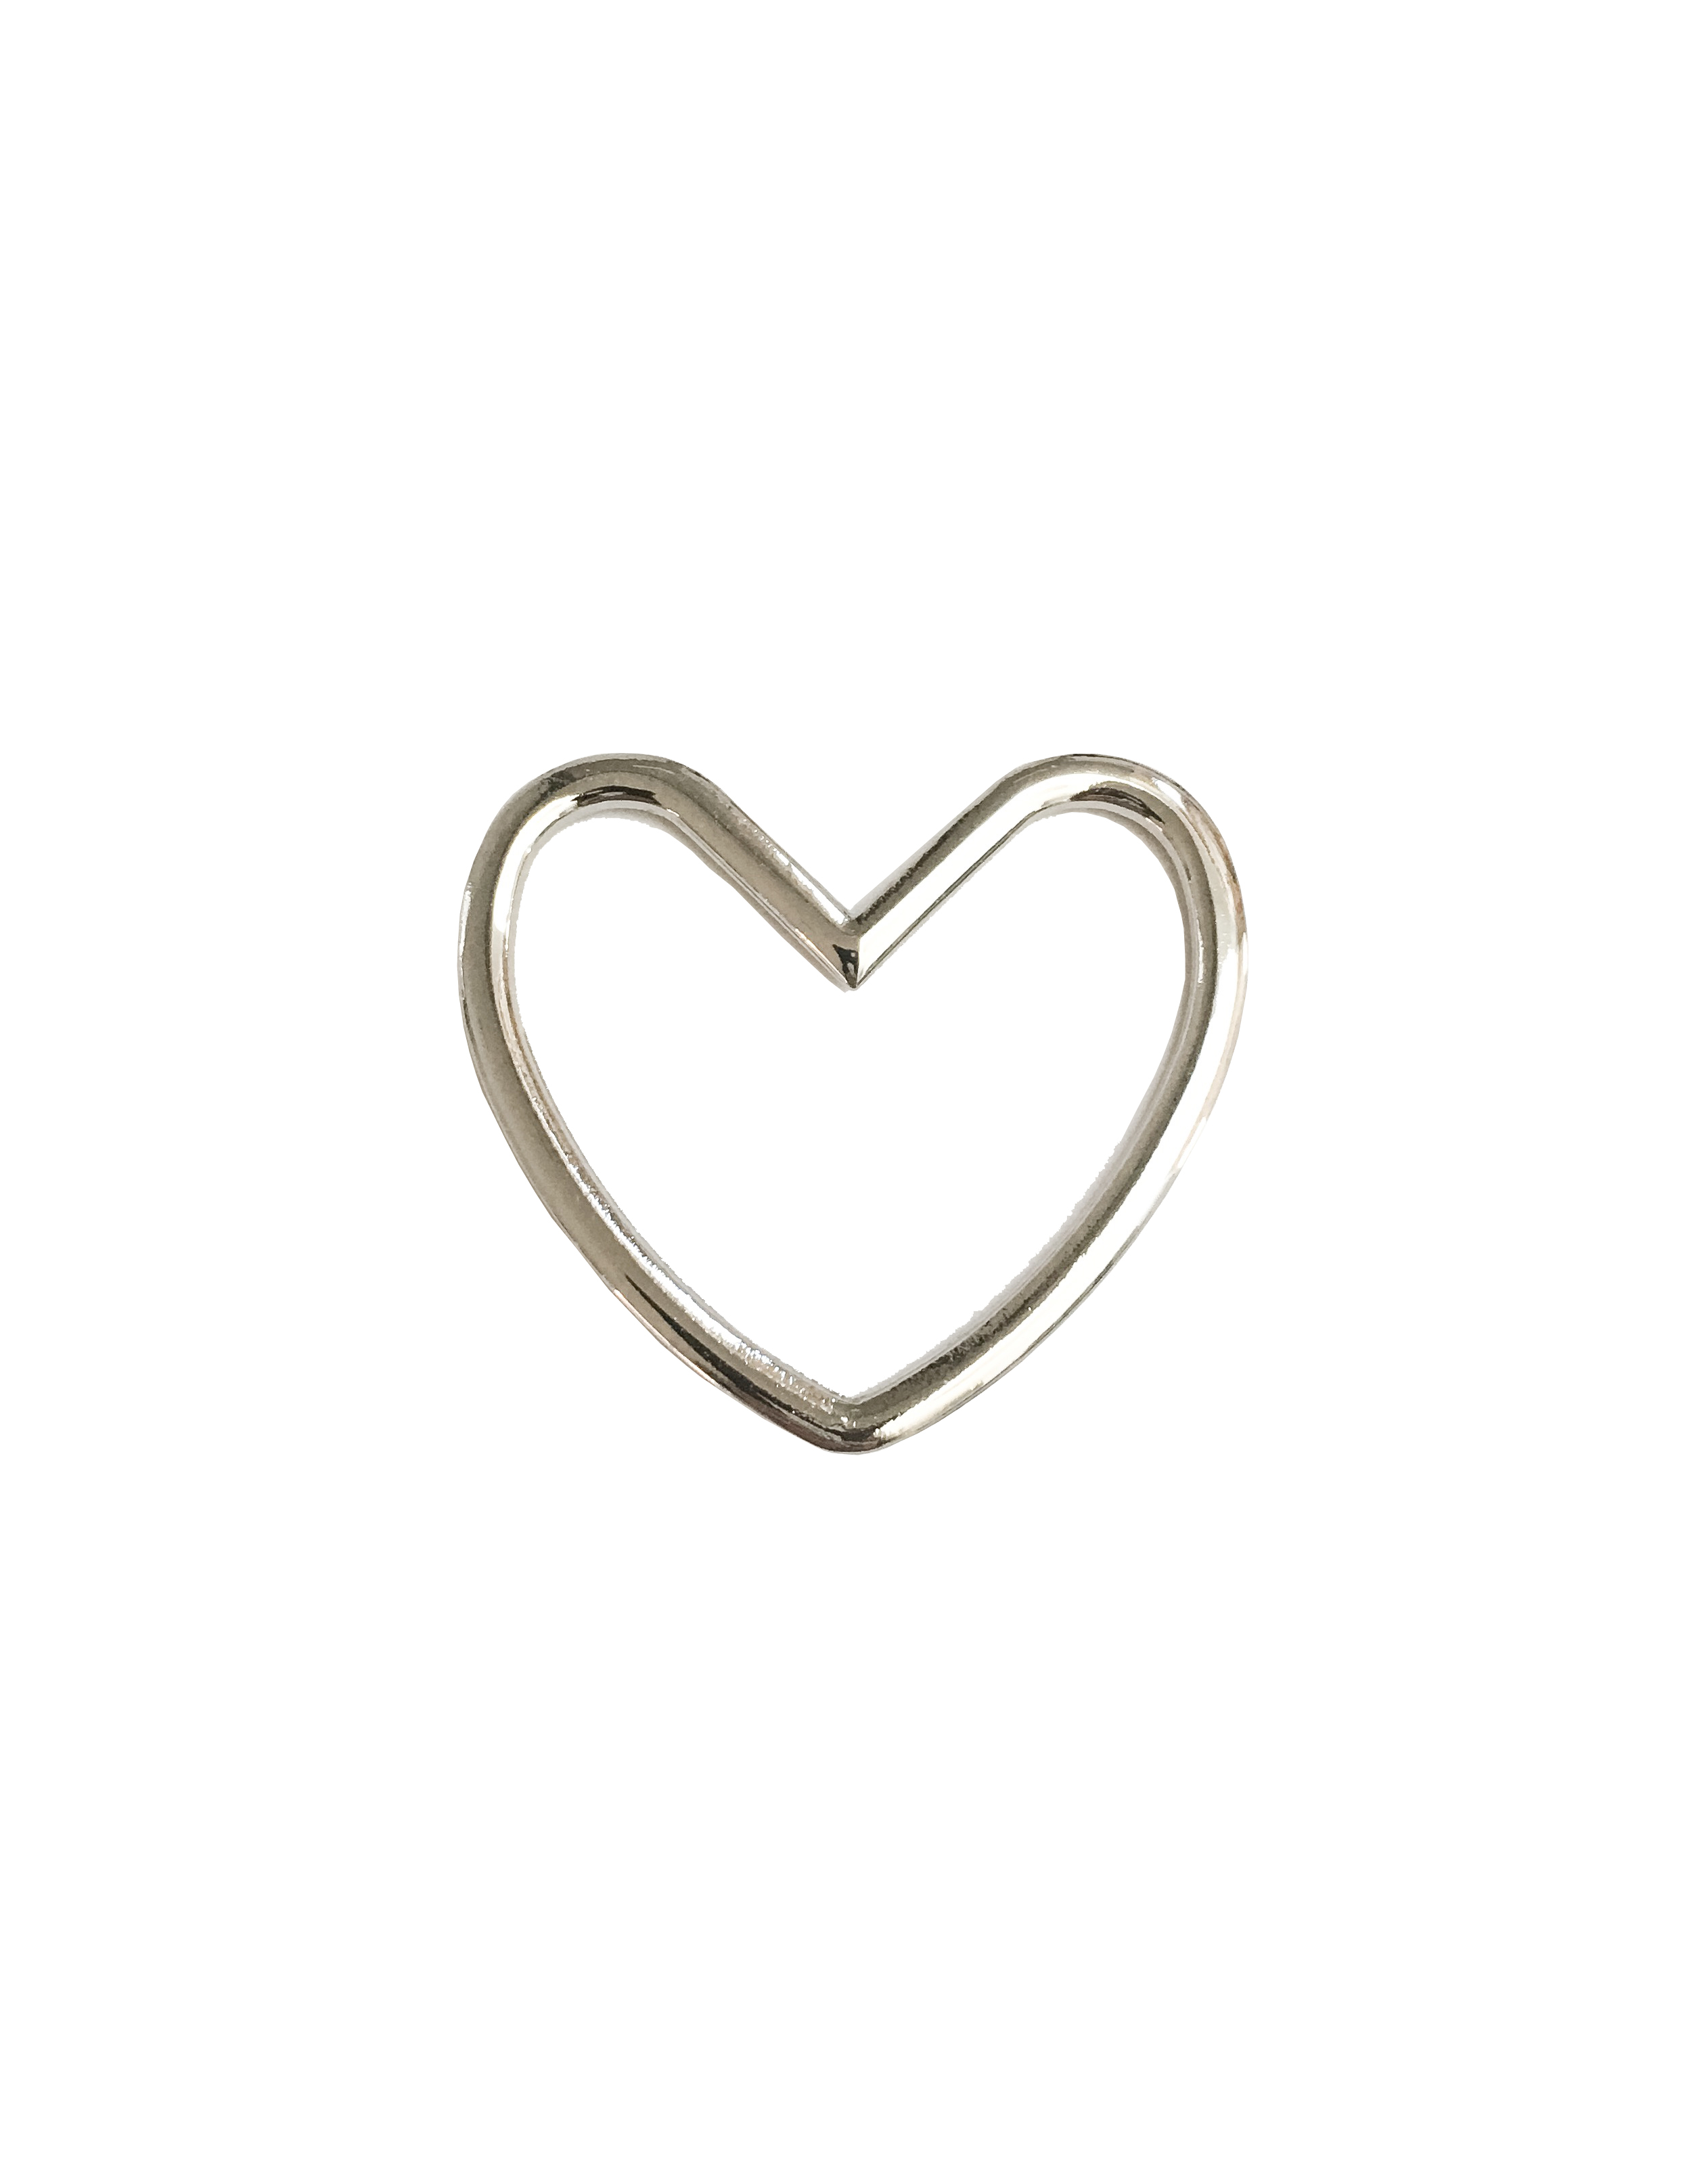 Large Heart Ring Creepyyeha Online Store Powered By Storenvy